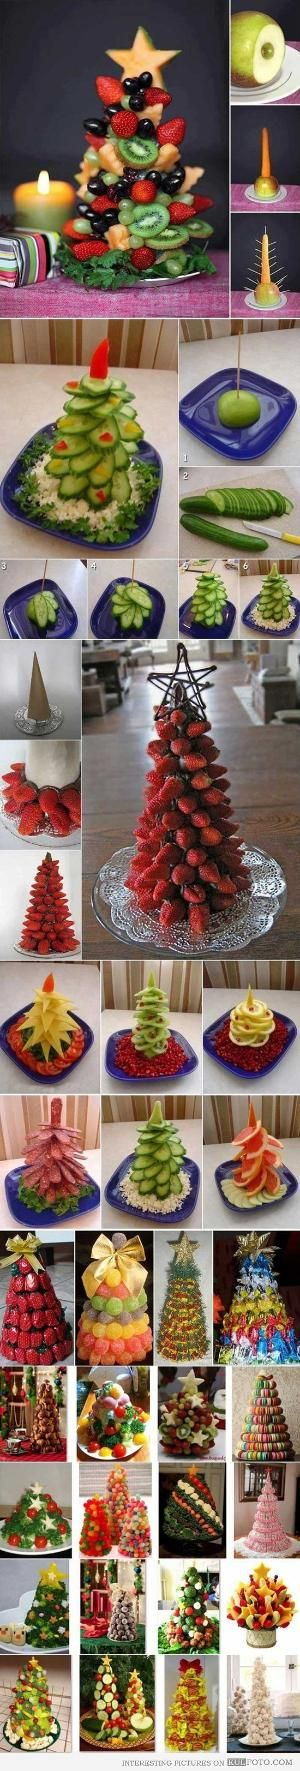 Fruit Christmas trees - Funny how-to guide with pictures for creating beautiful and cute Christmas trees from fruit and vegetables. * by Rebeca':